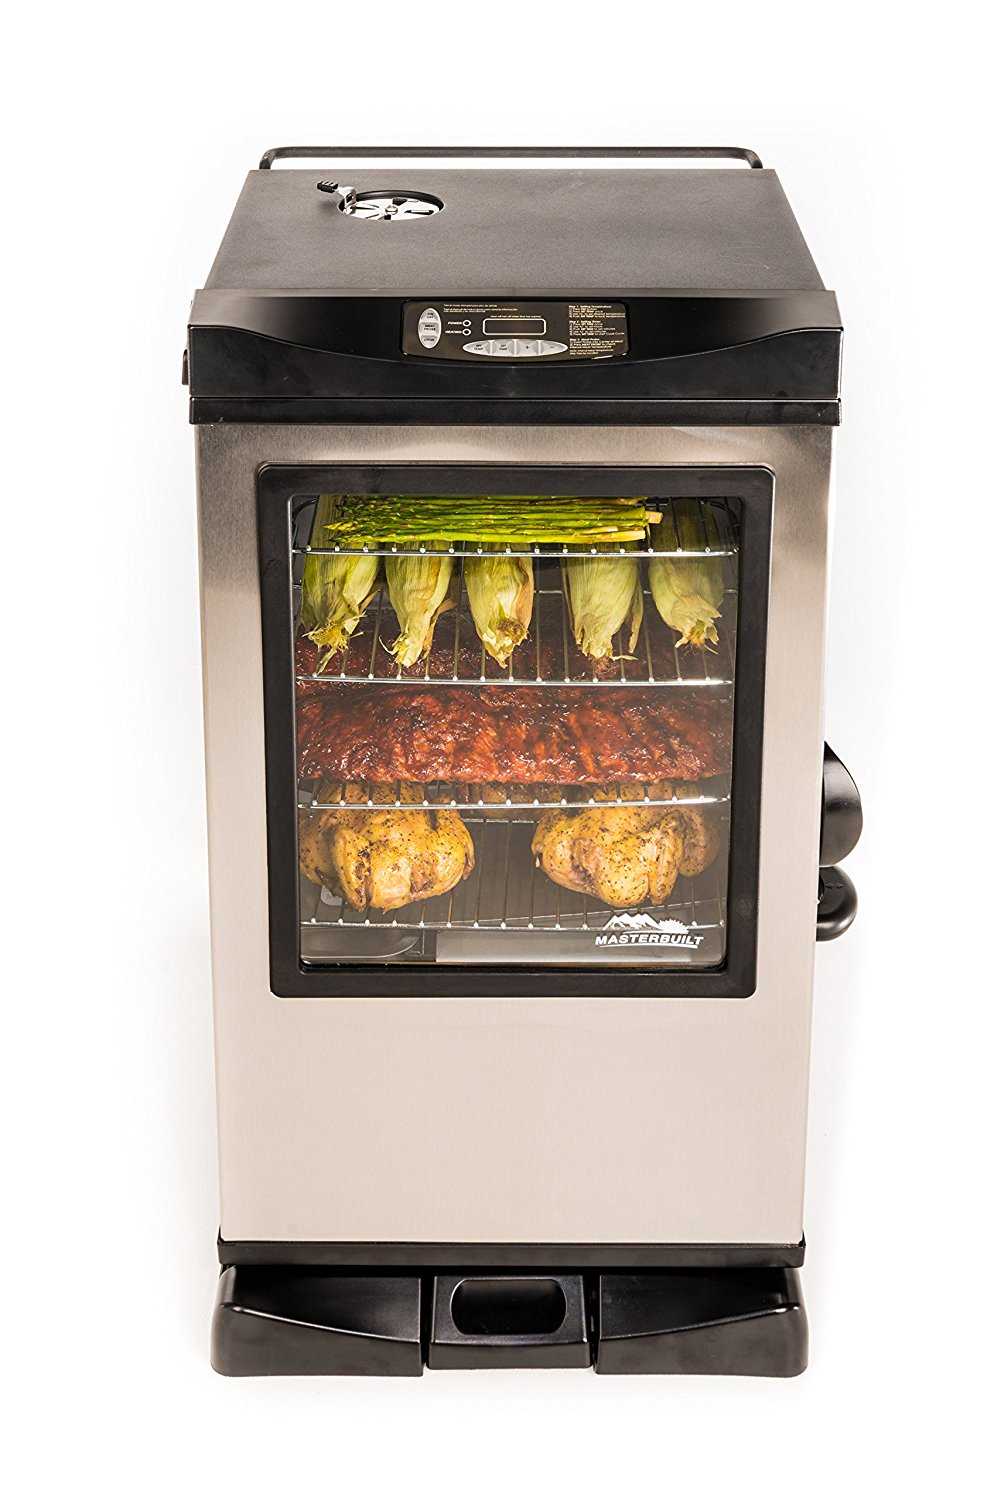 Top 3 electric smoker with glass door best smoker for Smoked fish in masterbuilt electric smoker